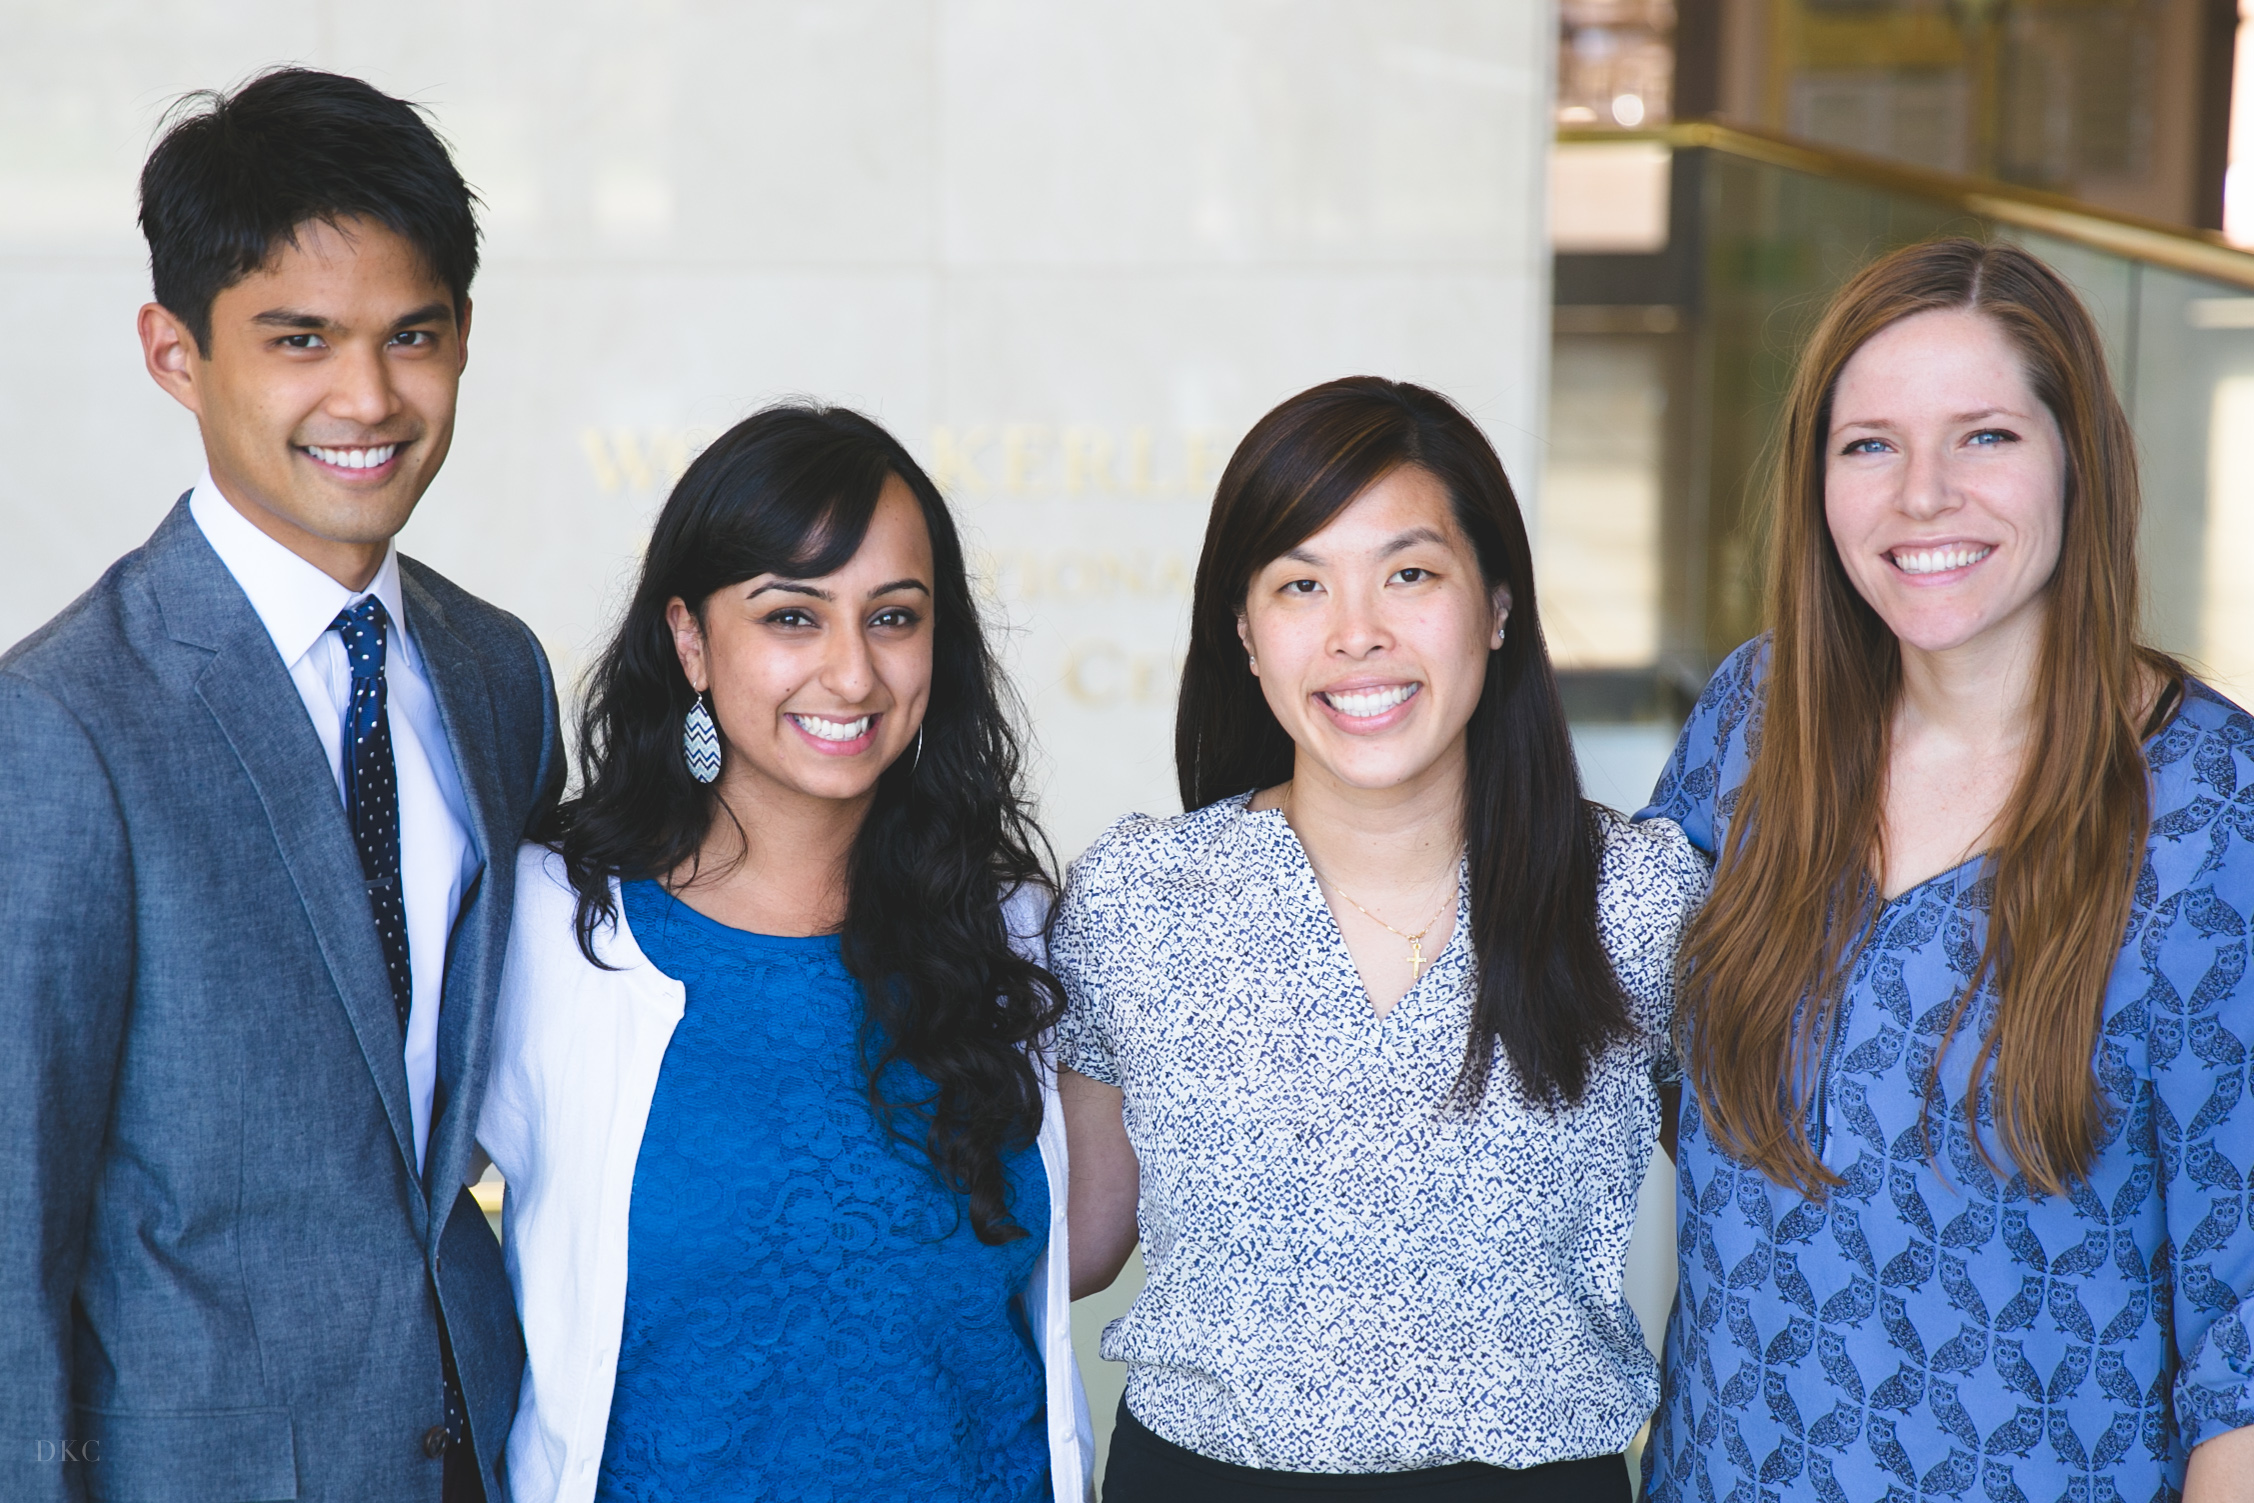 Image: 2016 Pediatric Chief Residents